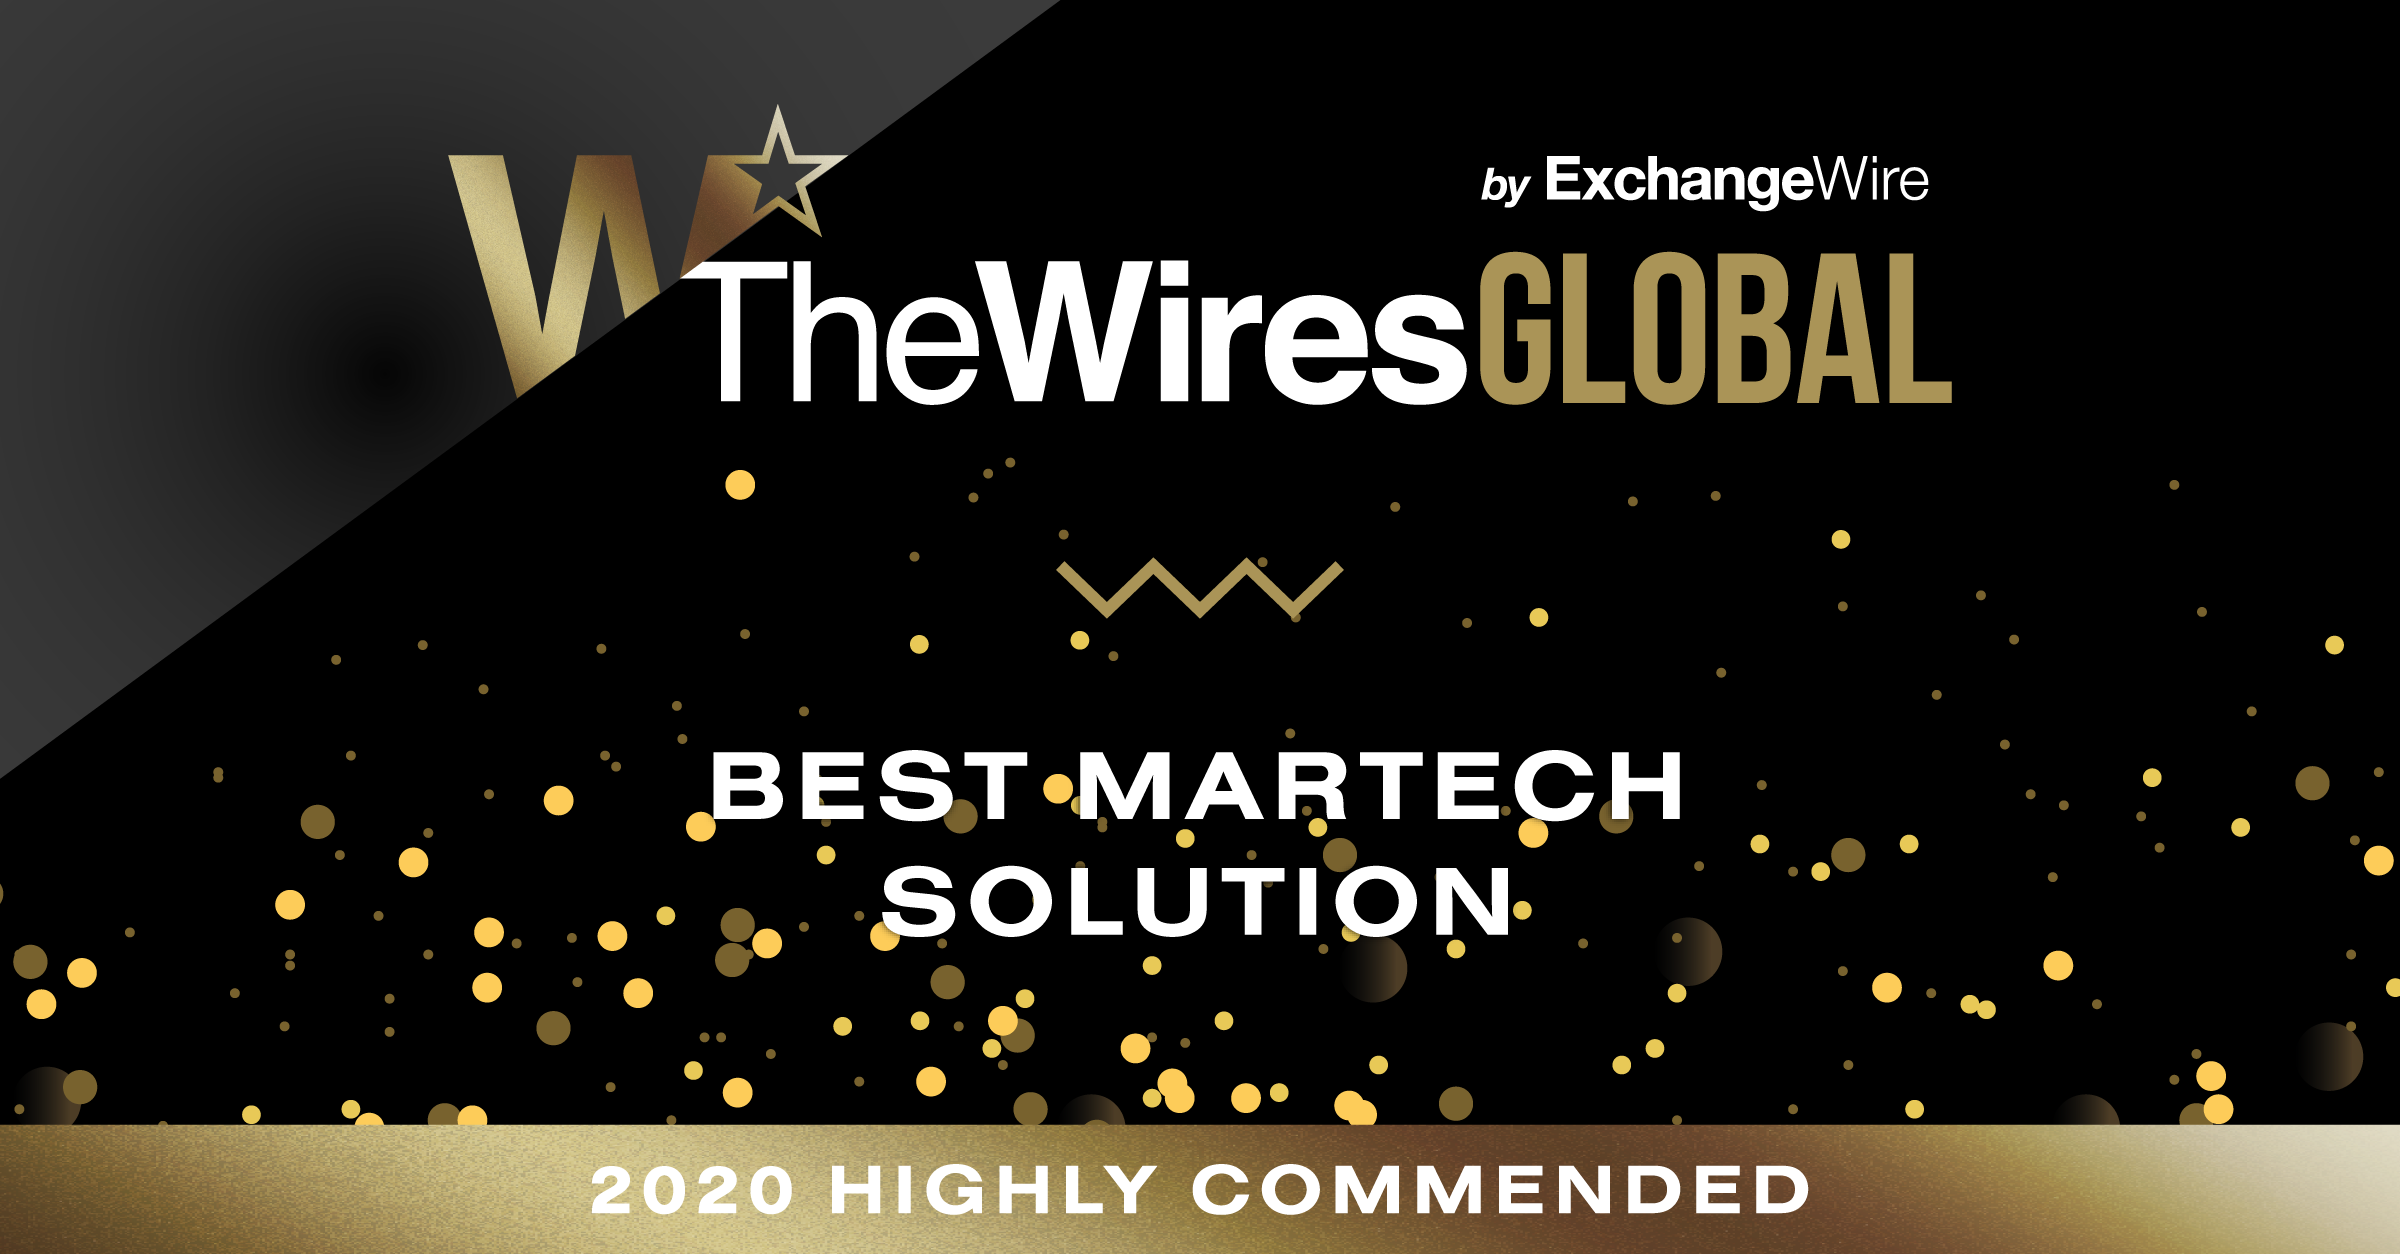 wires-global-2020-martech-commended@2x-1200x627-LinkedIn.png